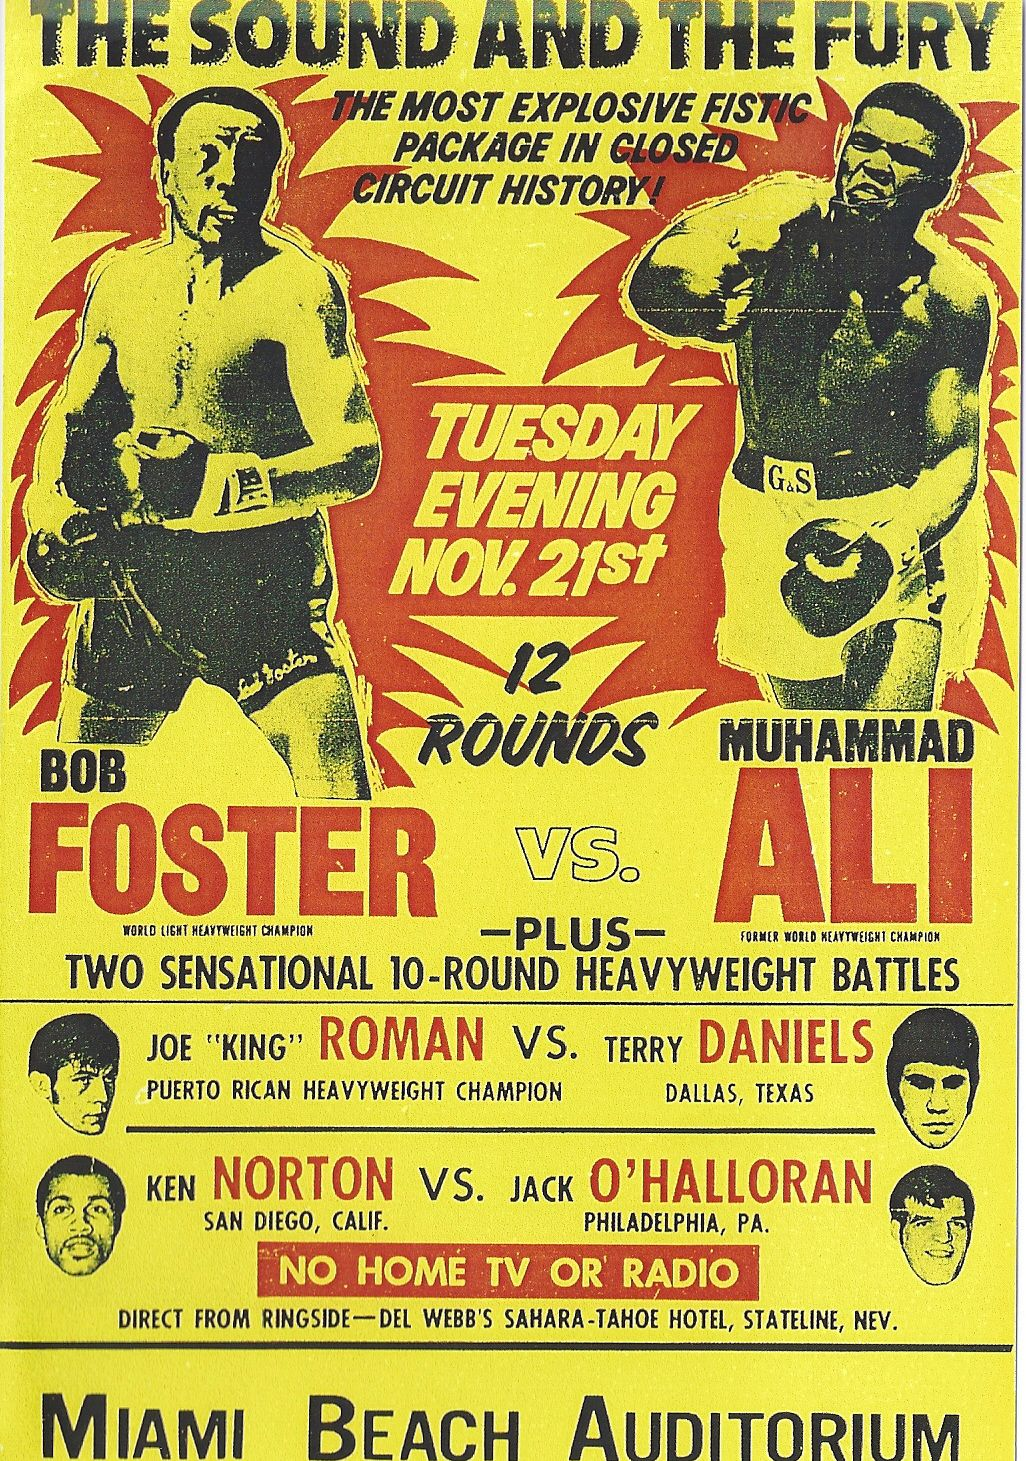 Latest 1026 1461 Boxing Posters Vintage Boxing Posters Wrestling Posters